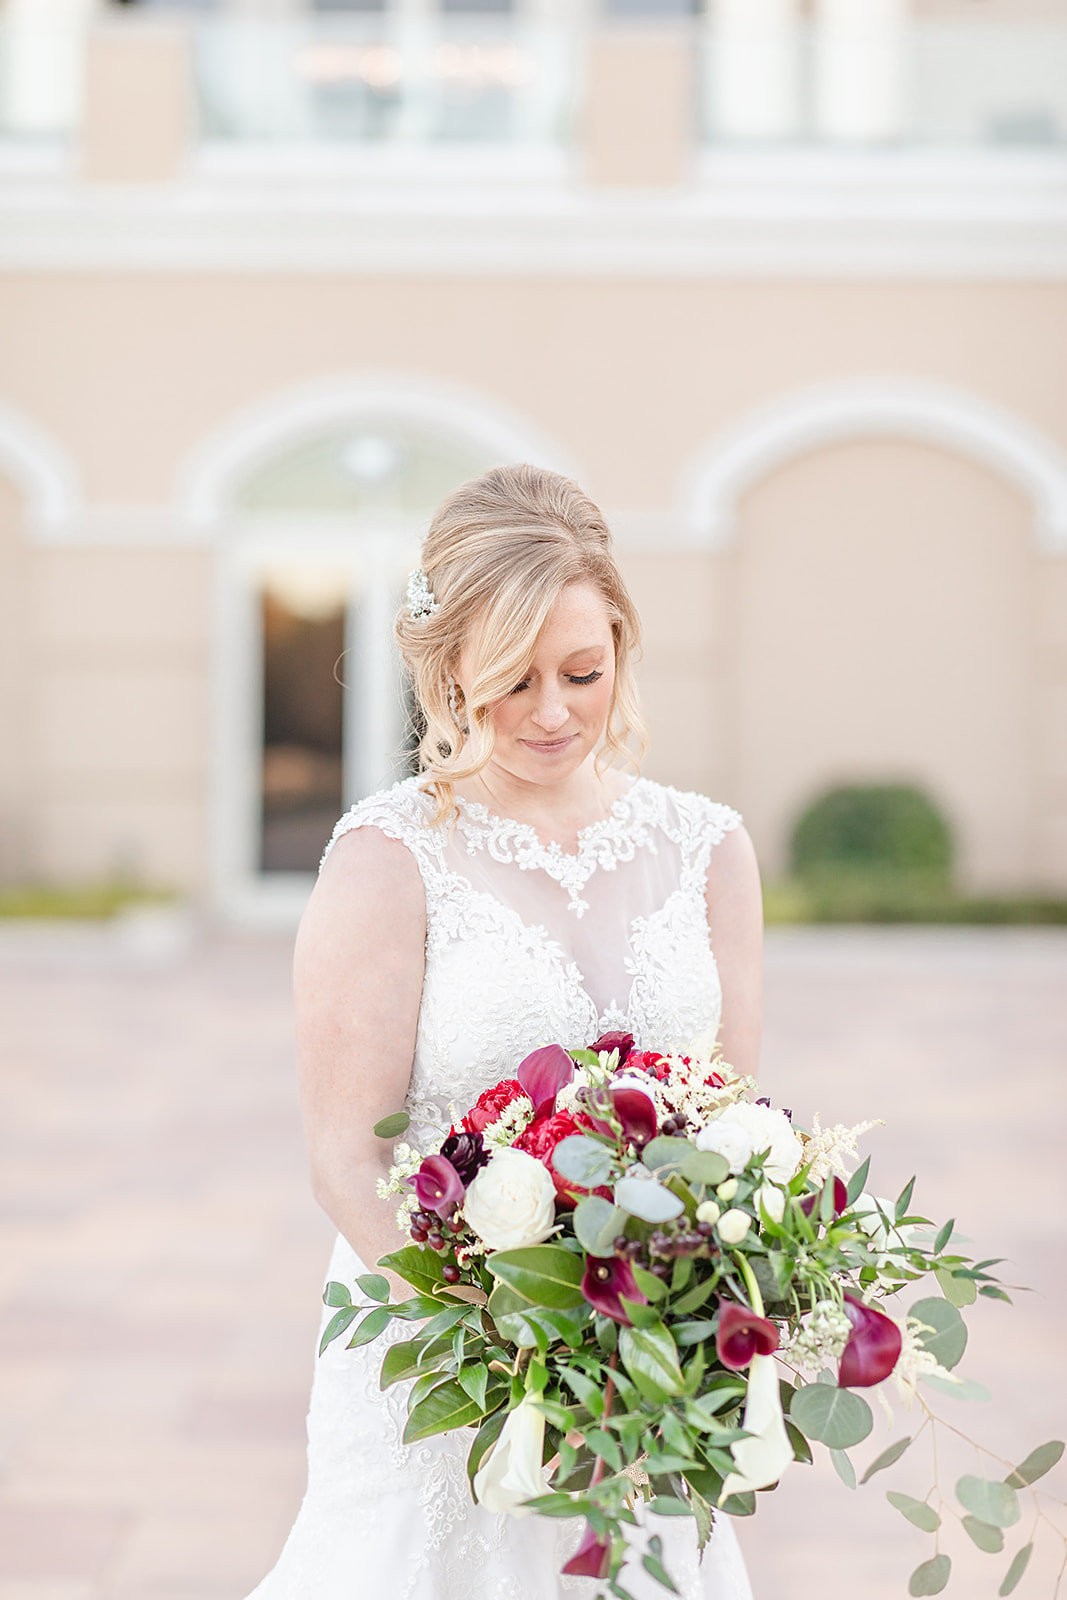 Red burgundy white and greenery bridal bouquet and happy bride